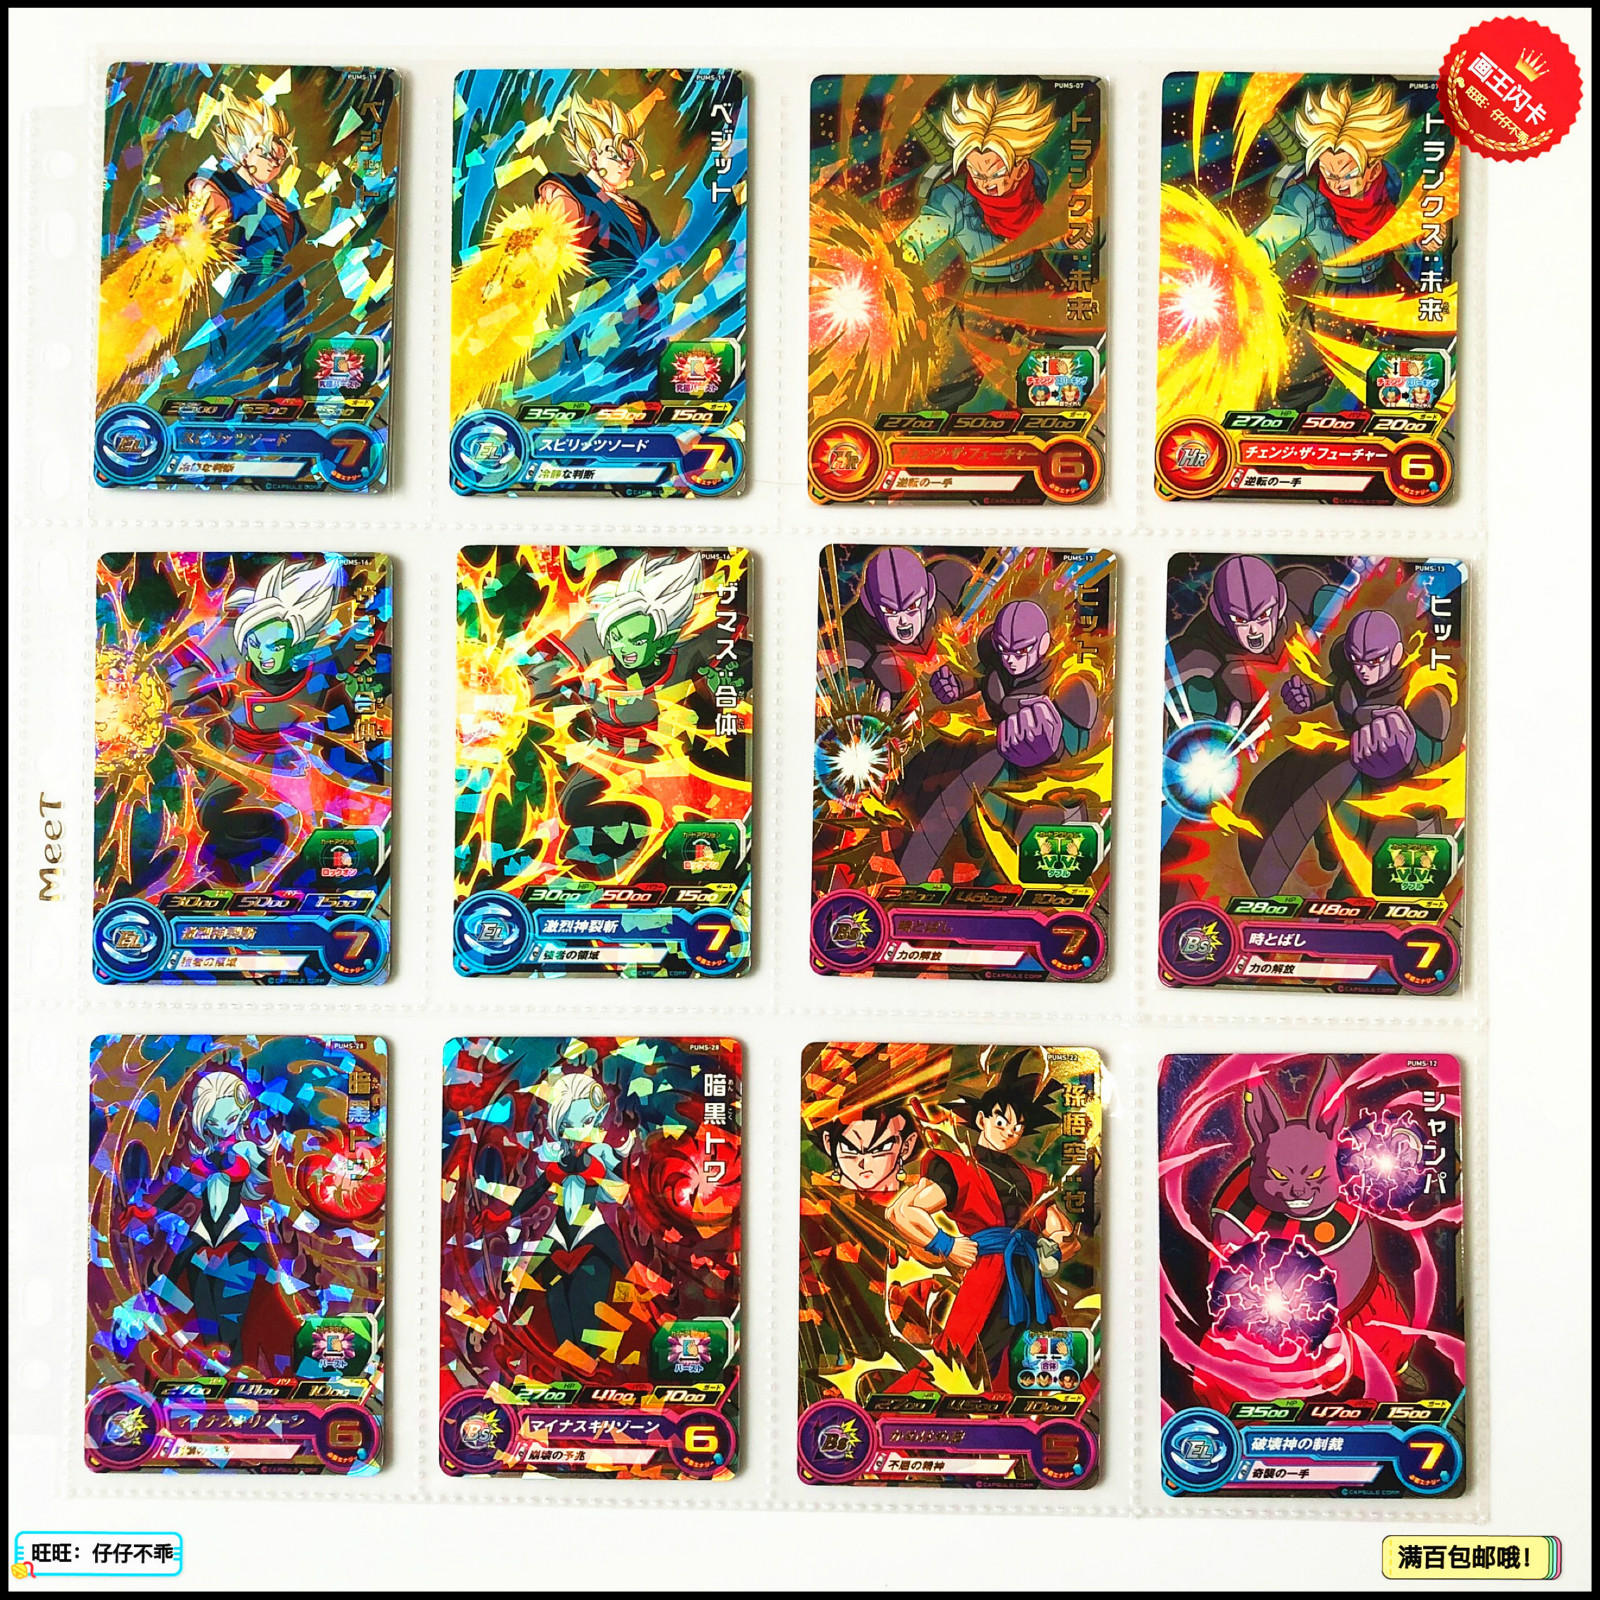 Japan Original Dragon Ball Hero Card PUMS Goku Toys Hobbies Collectibles Game Collection Anime Cards